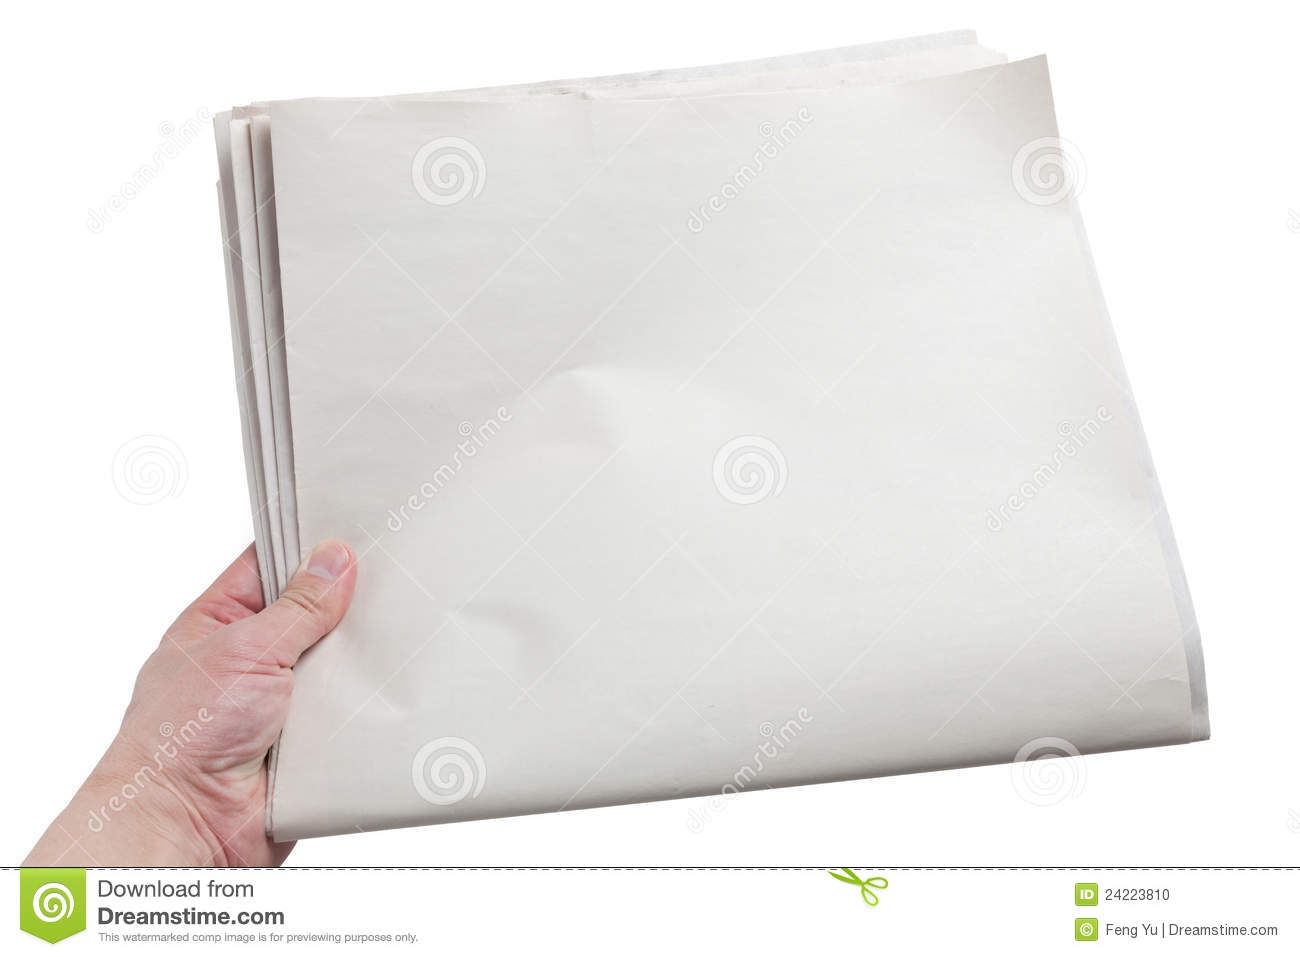 blank newspaper stock photo. image of holding, white - 24223810